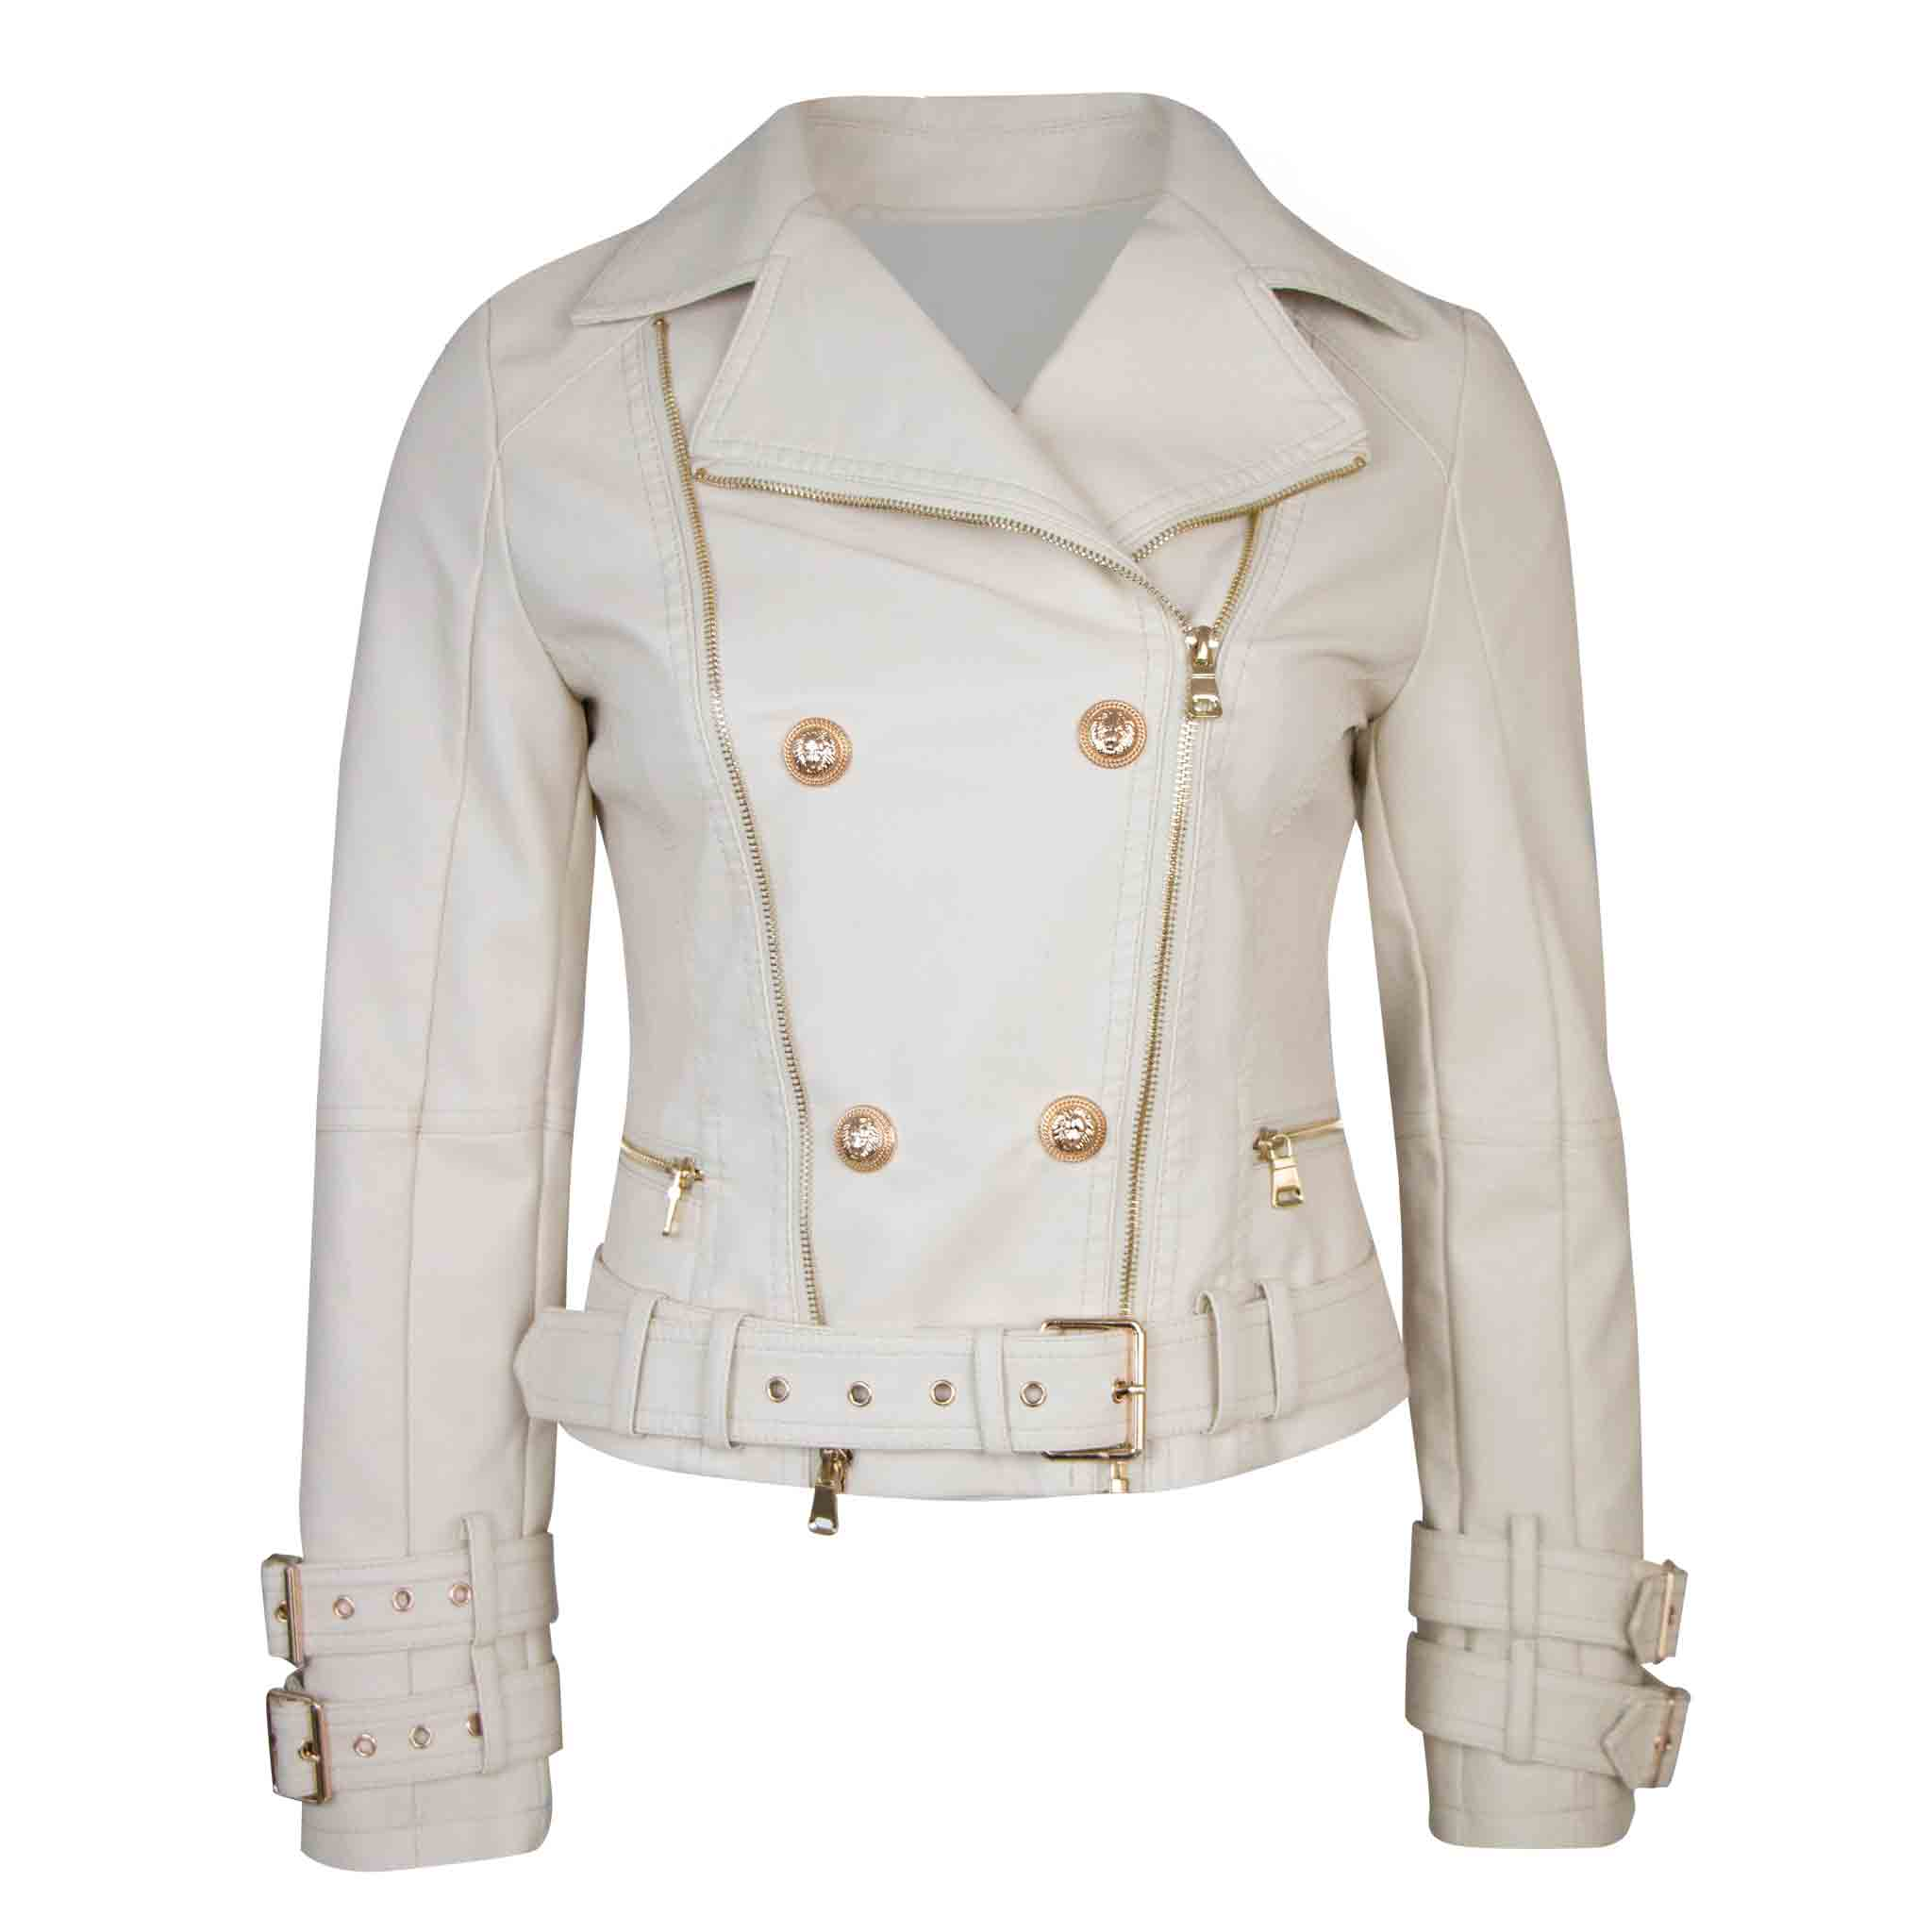 Golden button jacket